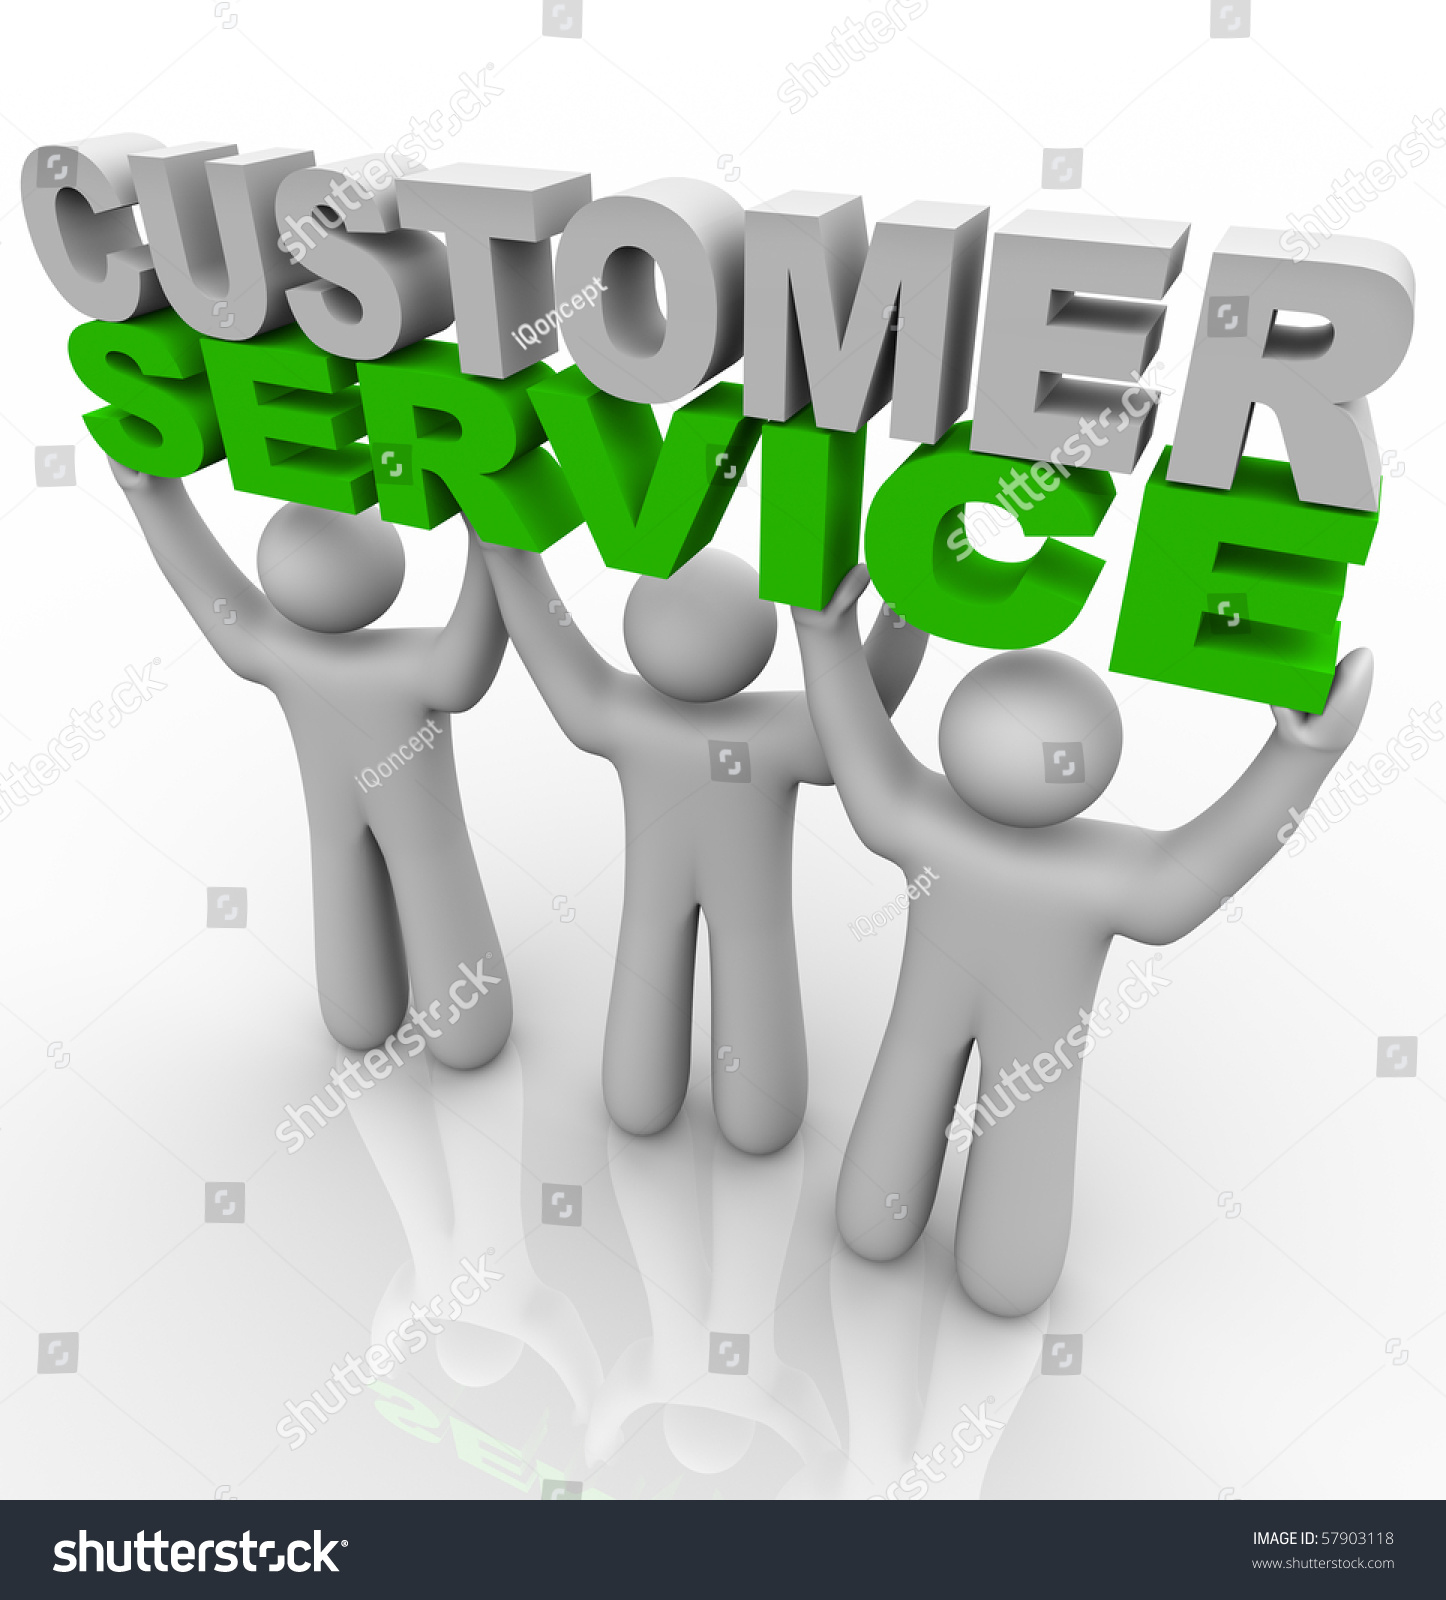 thesis about customer services In this project report we will study the effects of service delivery on customer delight, which is hypothesised to be among the predictors of repurchase intention.